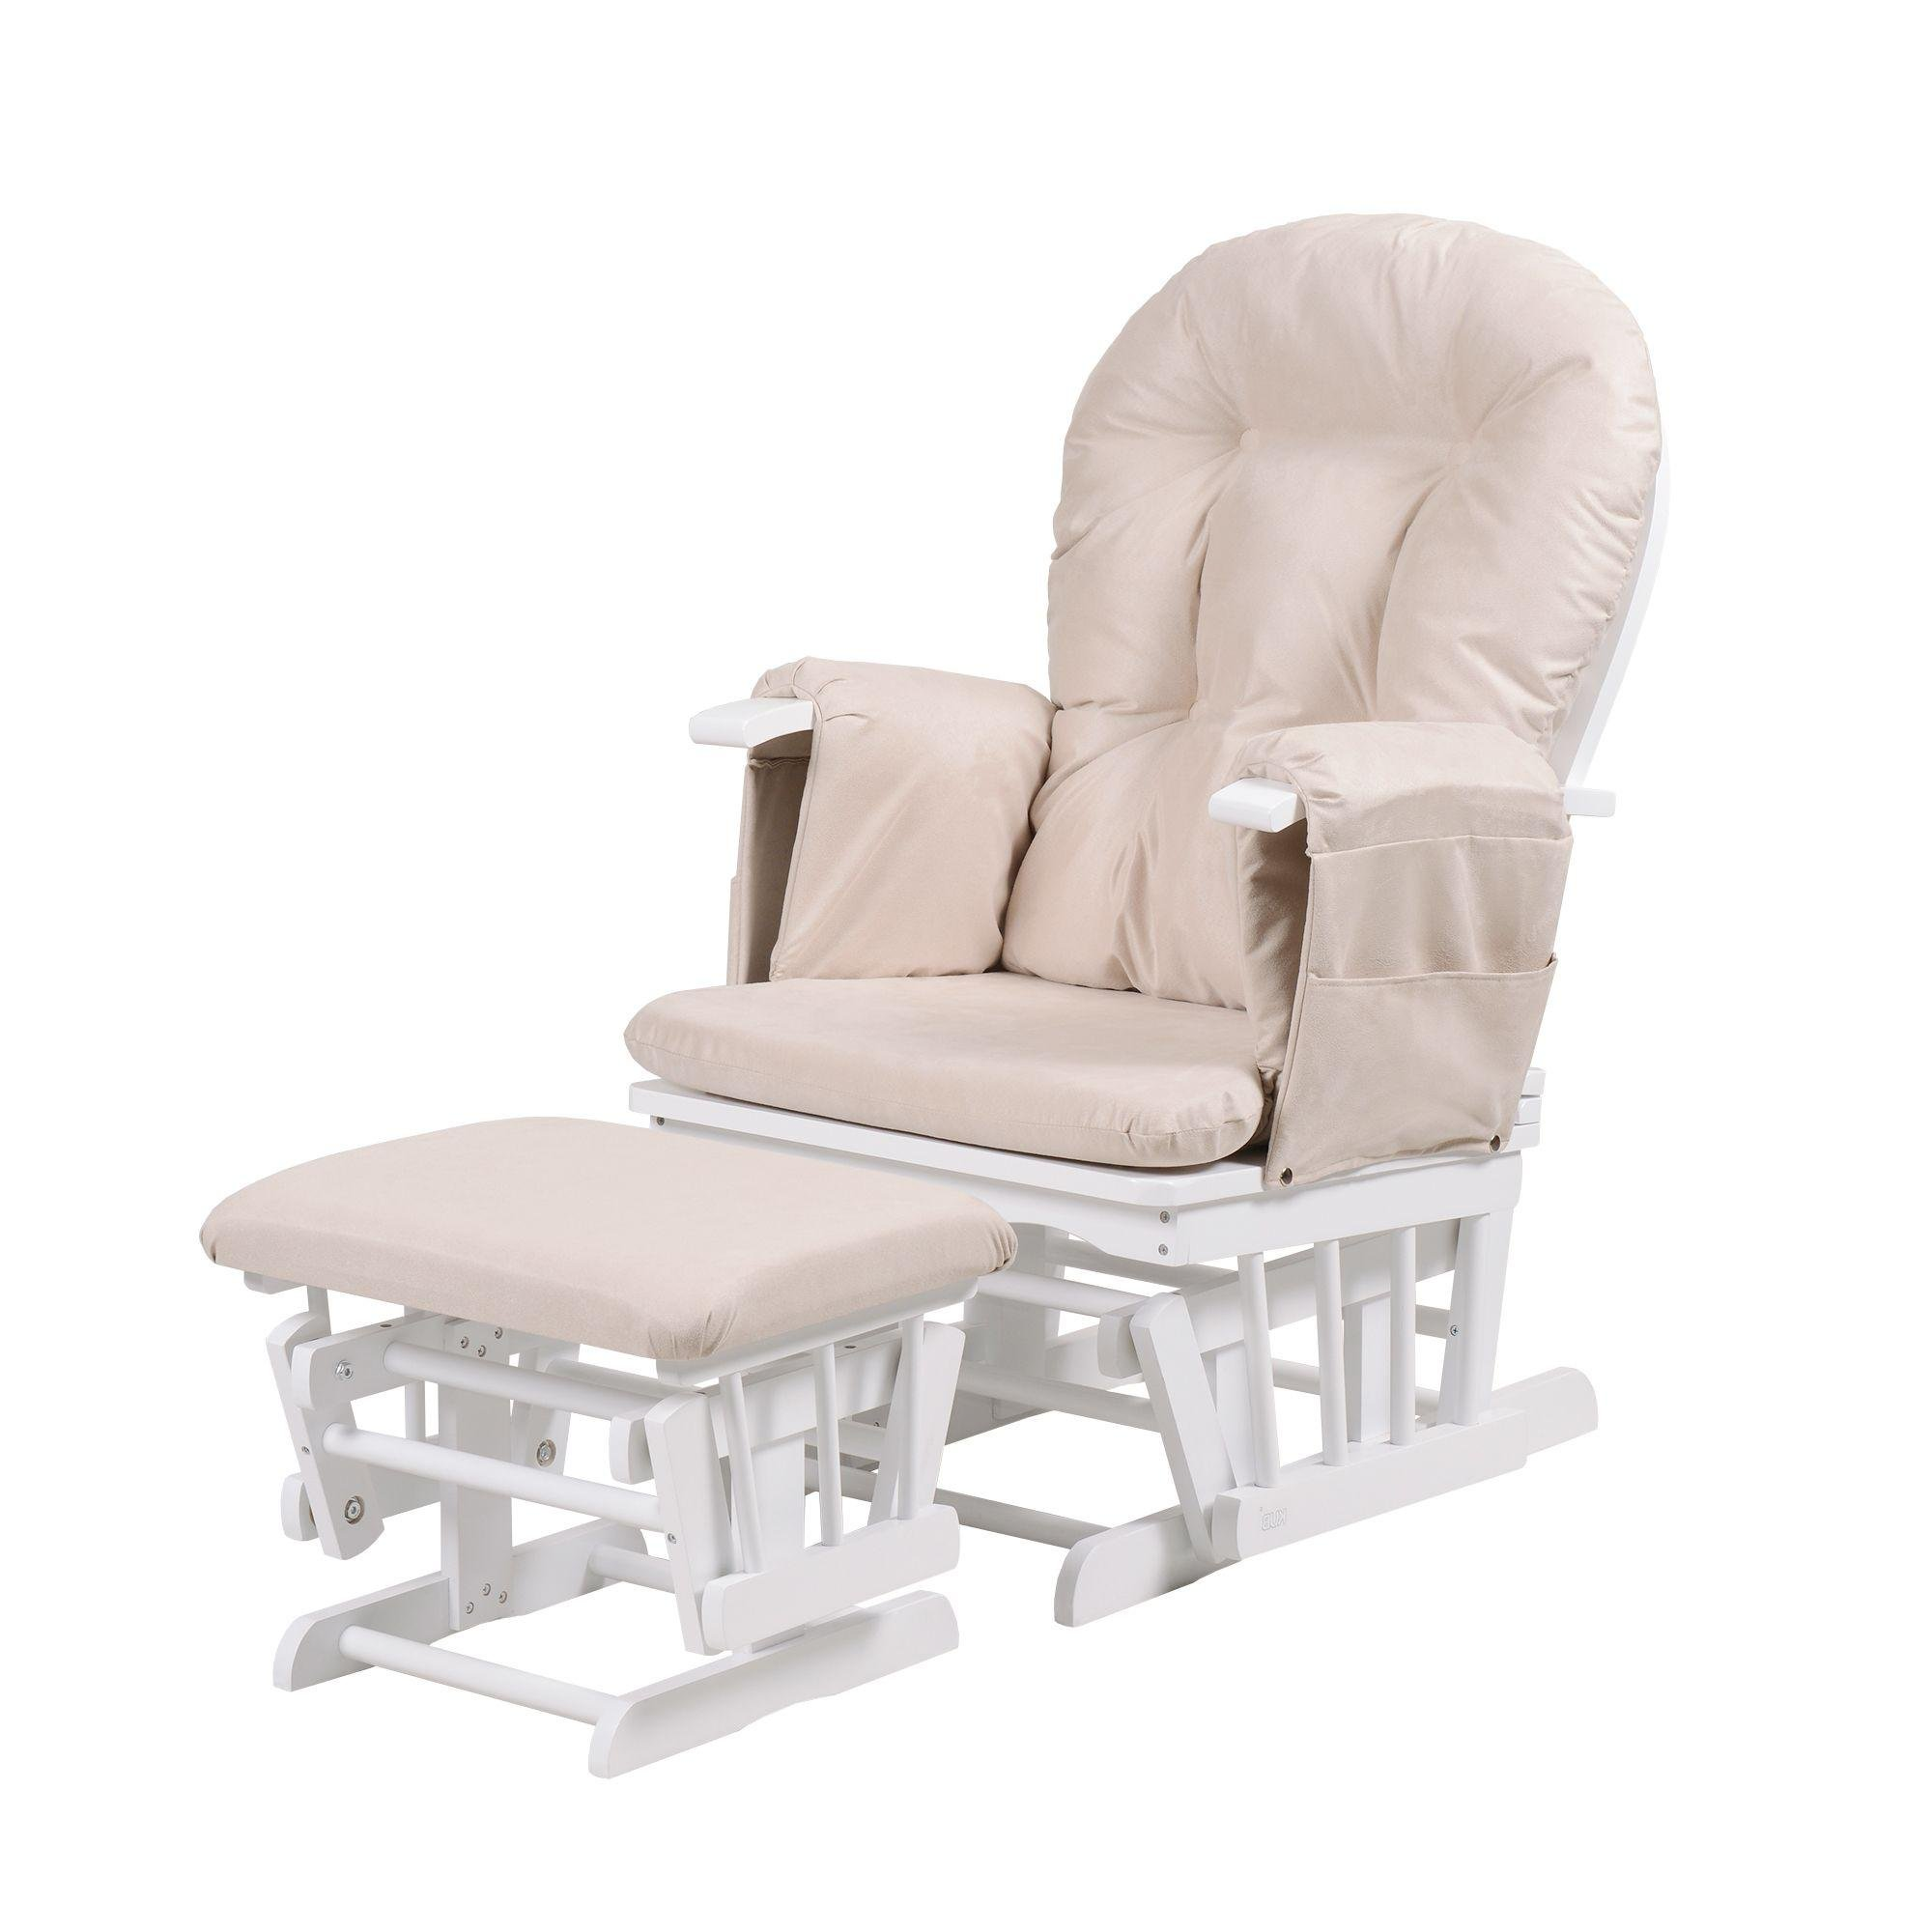 Kub Haywood Reclining Glider and Footstool - White